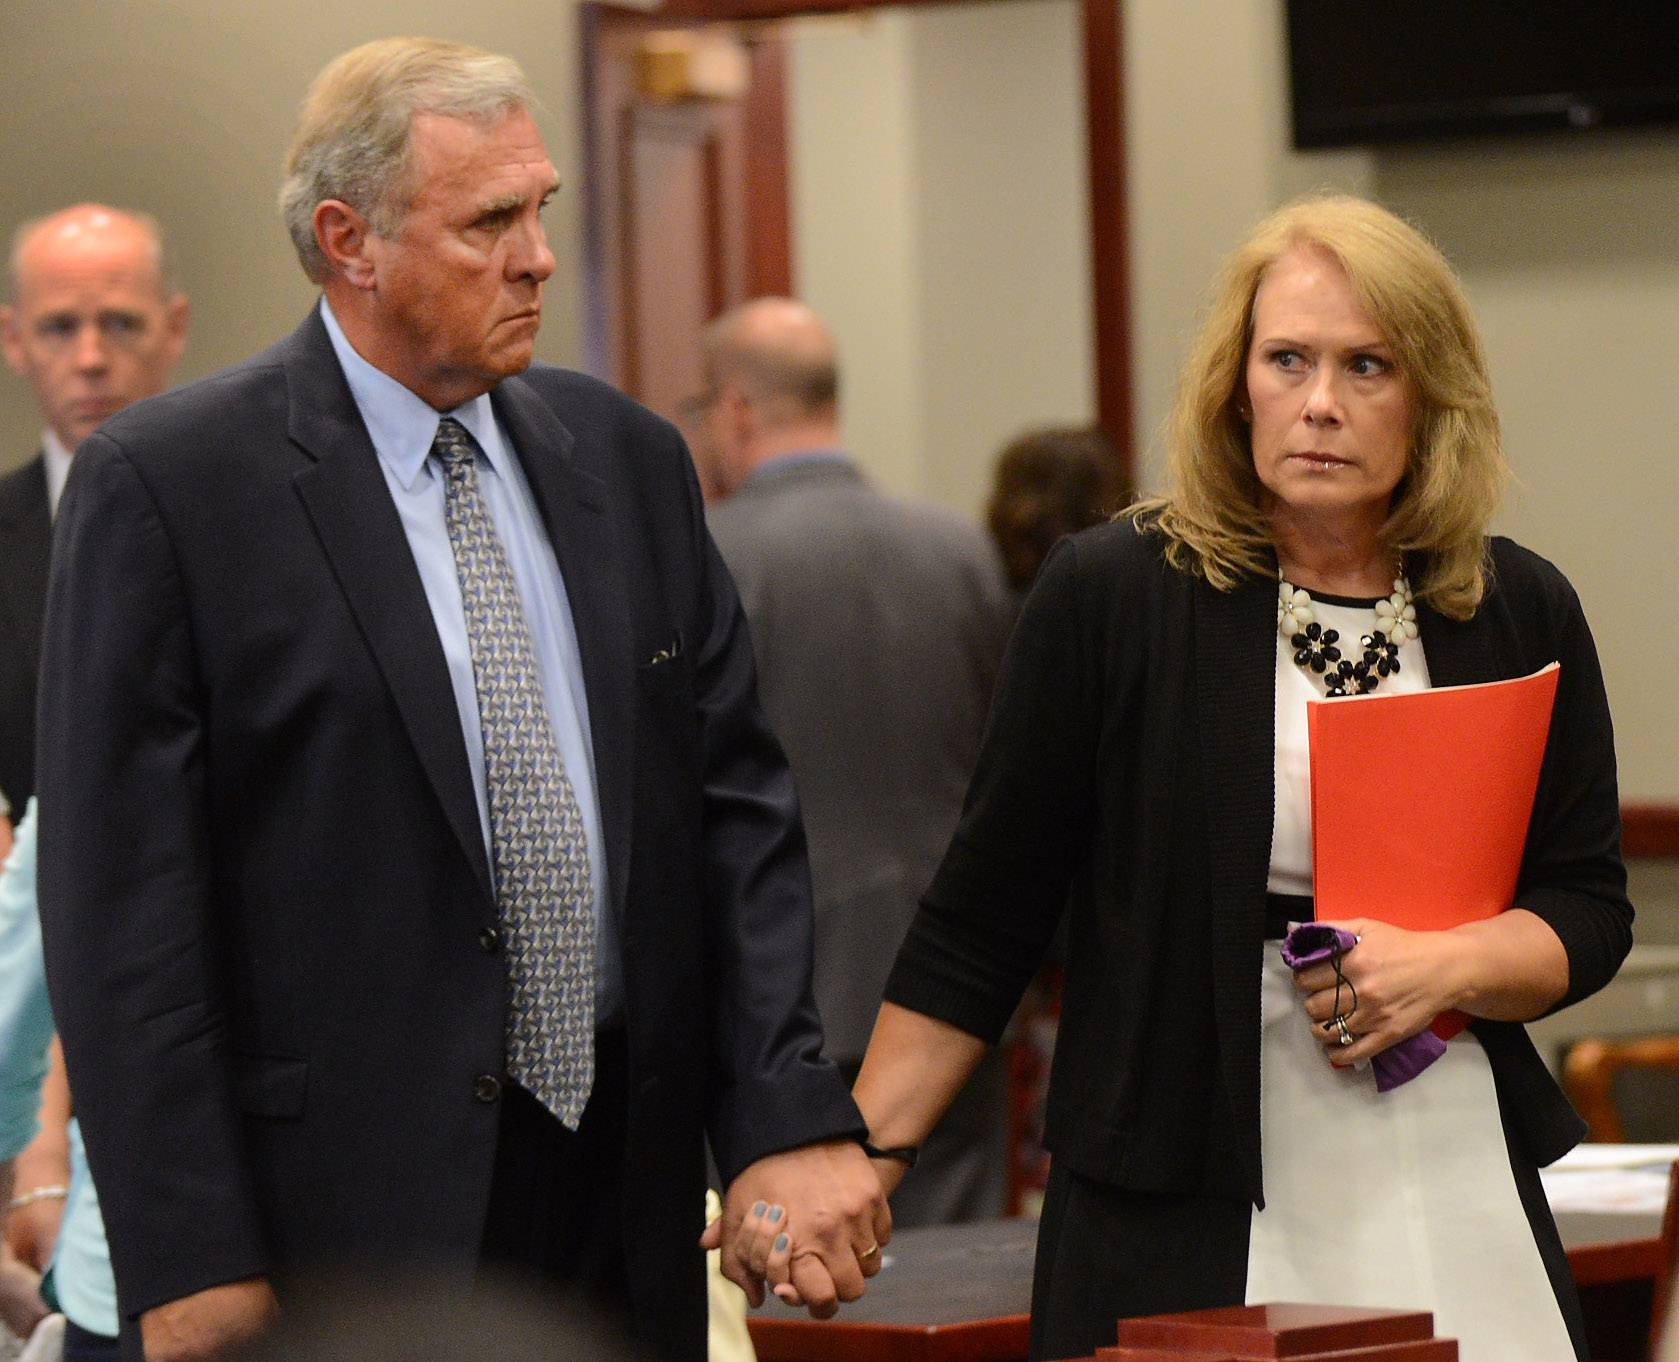 Gary and Ruth Bogenberger enter the courtroom where 22 people pleaded guilty to misdemeanor charges in the hazing death of their son, Northern Illinois University freshman David Bogenberger of Palatine, at the DeKalb County Courthouse in Sycamore on Friday.